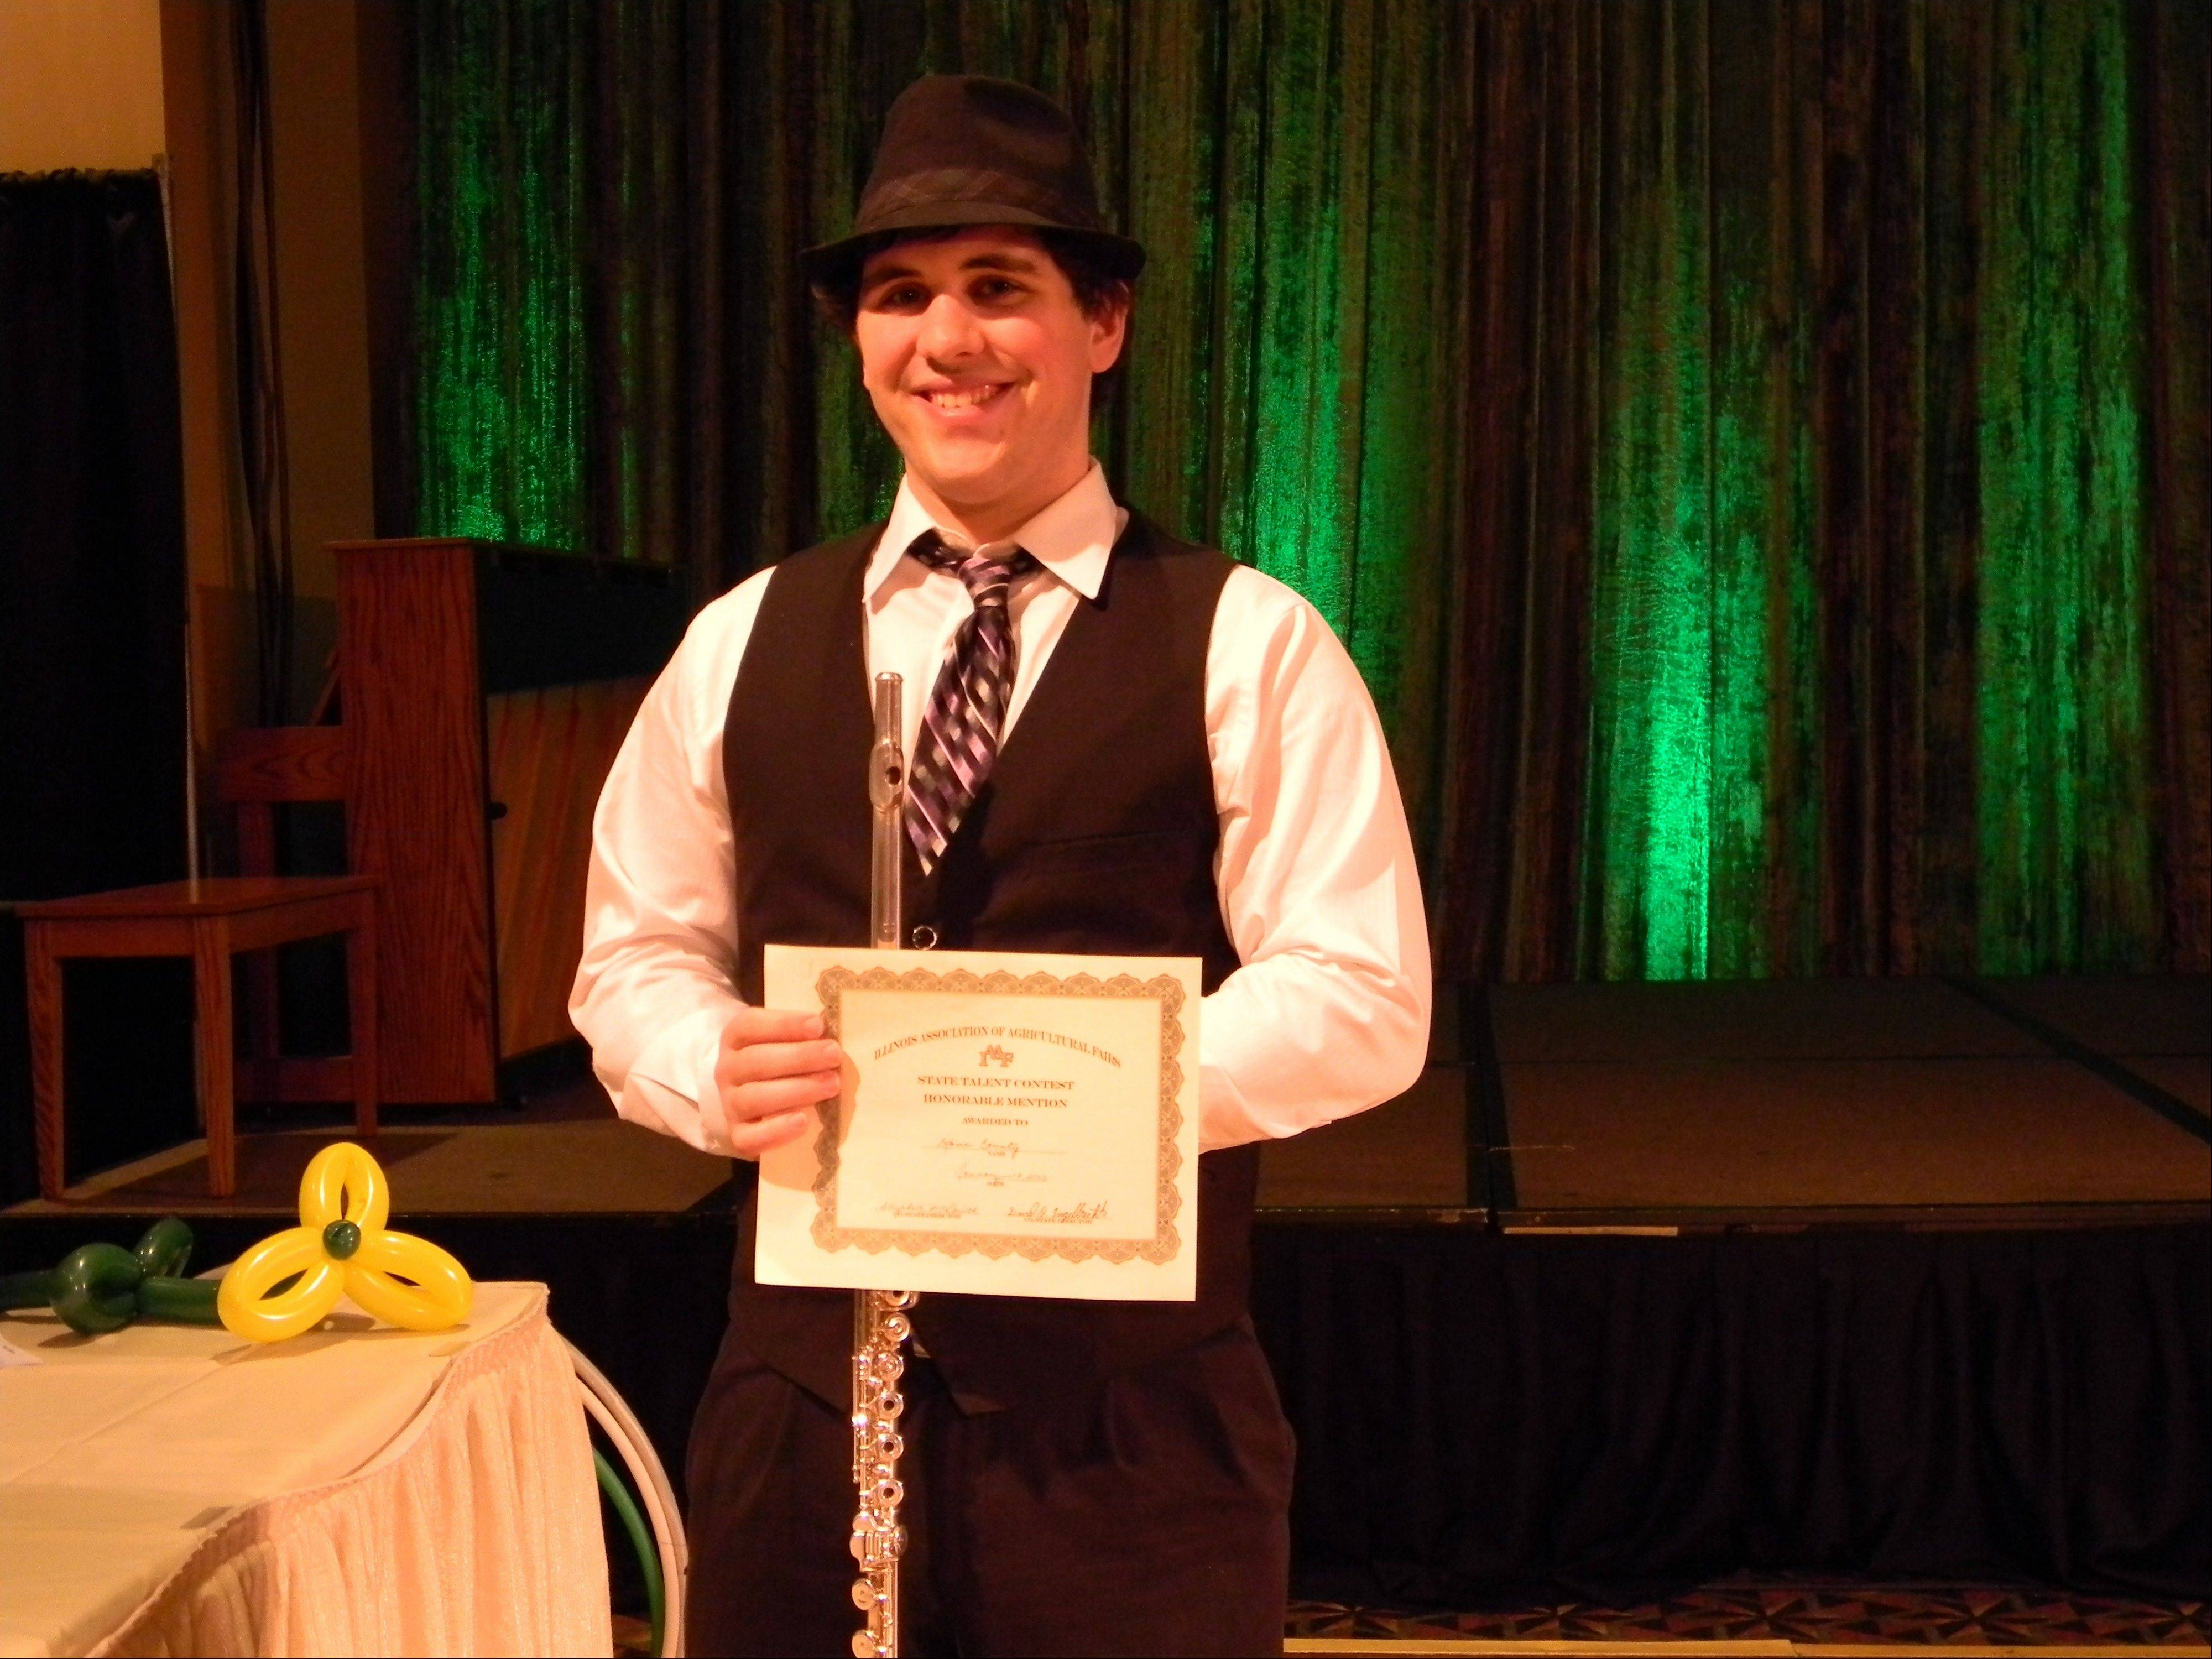 Eric Luminais, 19, of Geneva beat out 36 other acts in the Senior Division at the state talent competition.